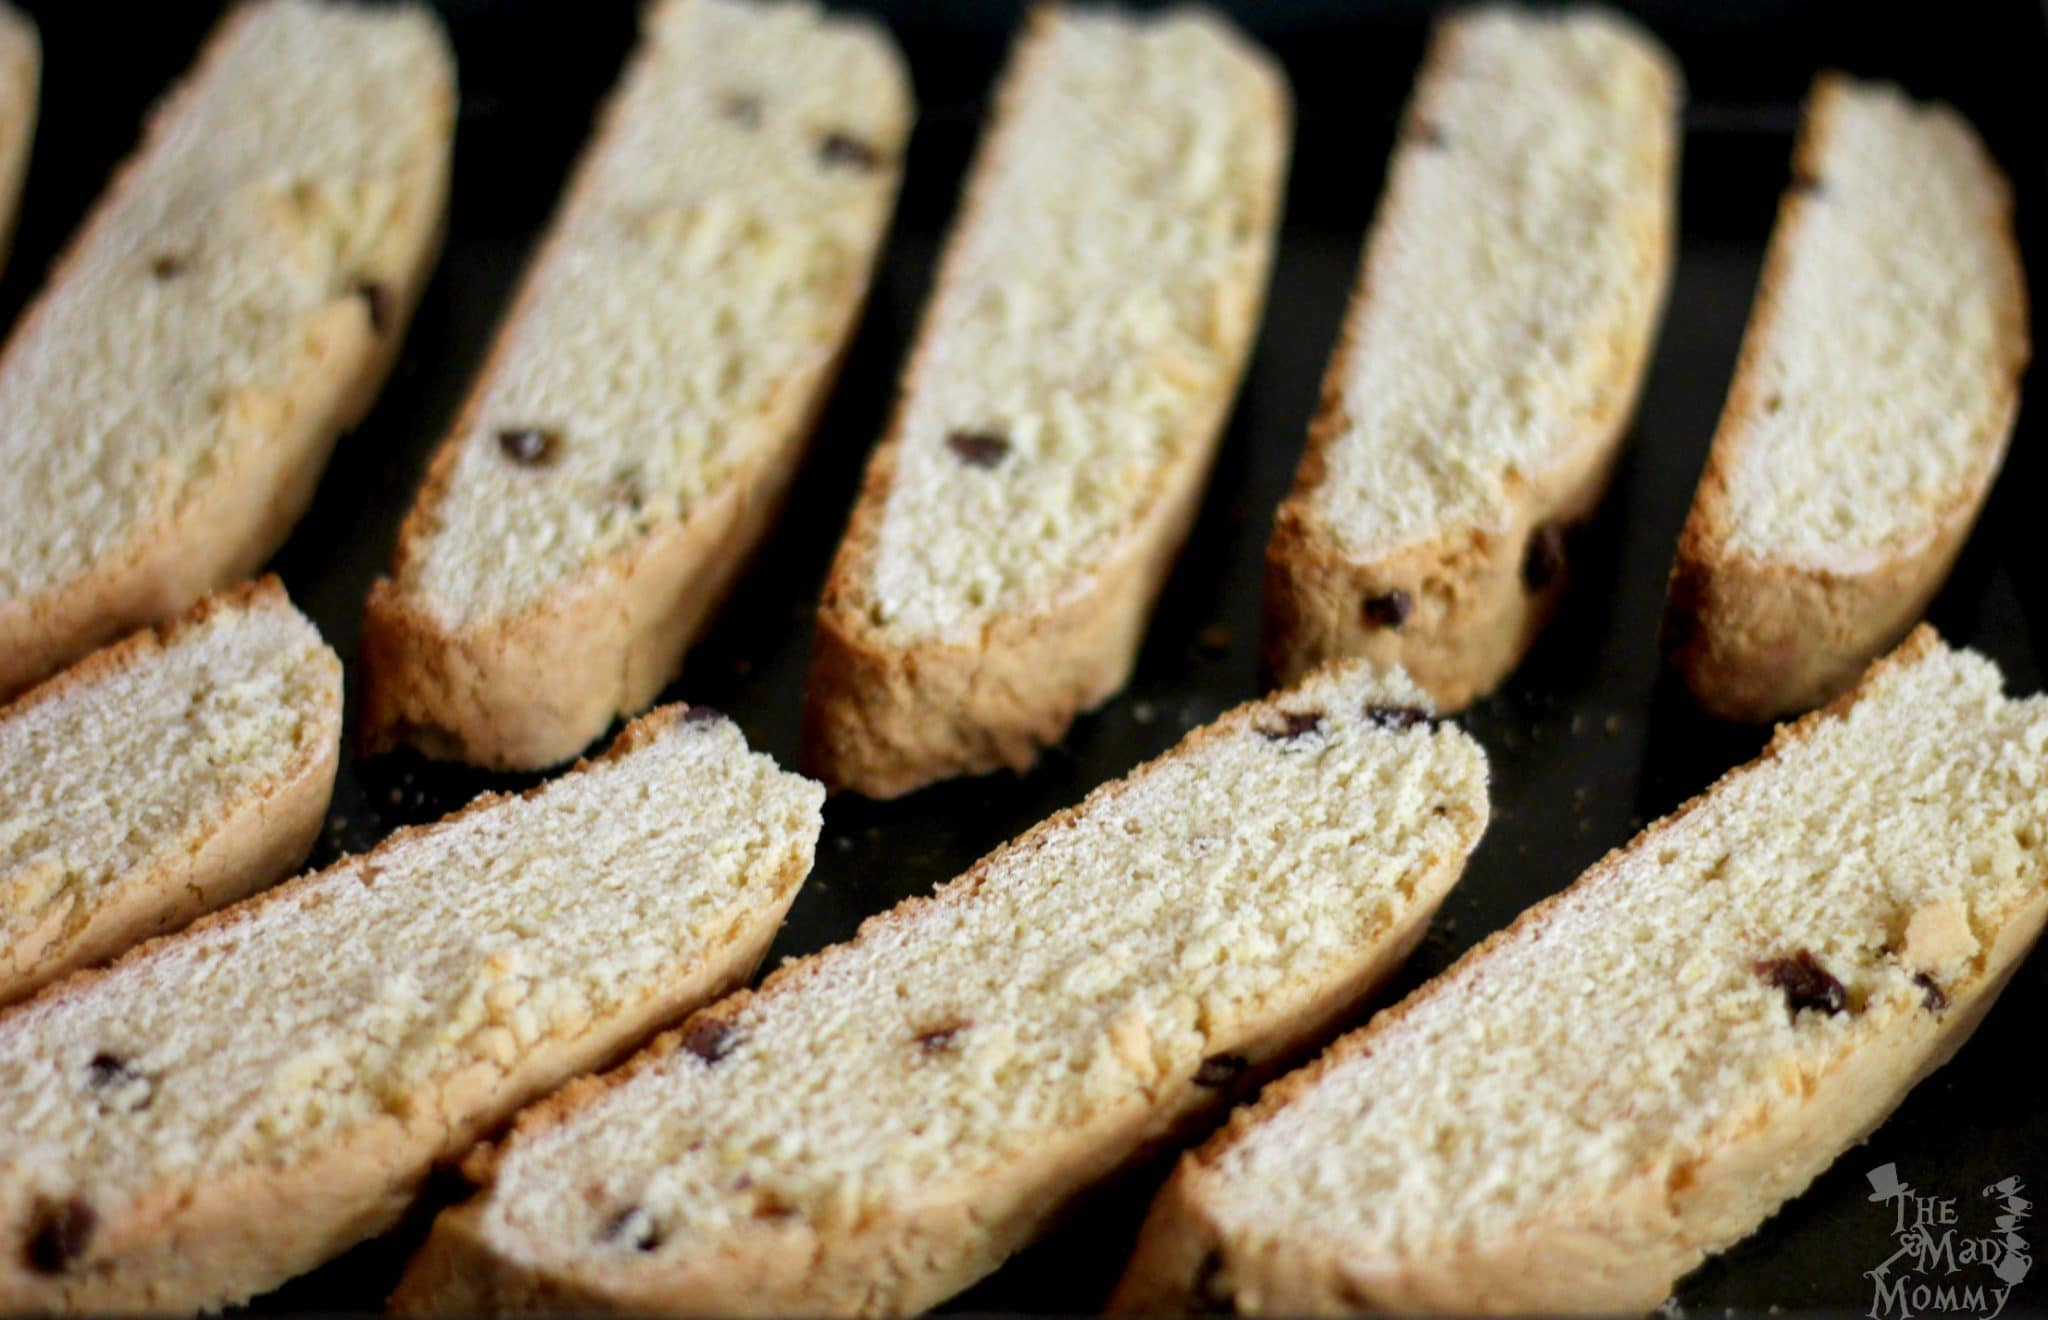 Biscotti slices ready for their final bake. #AD #AToraniHalloween